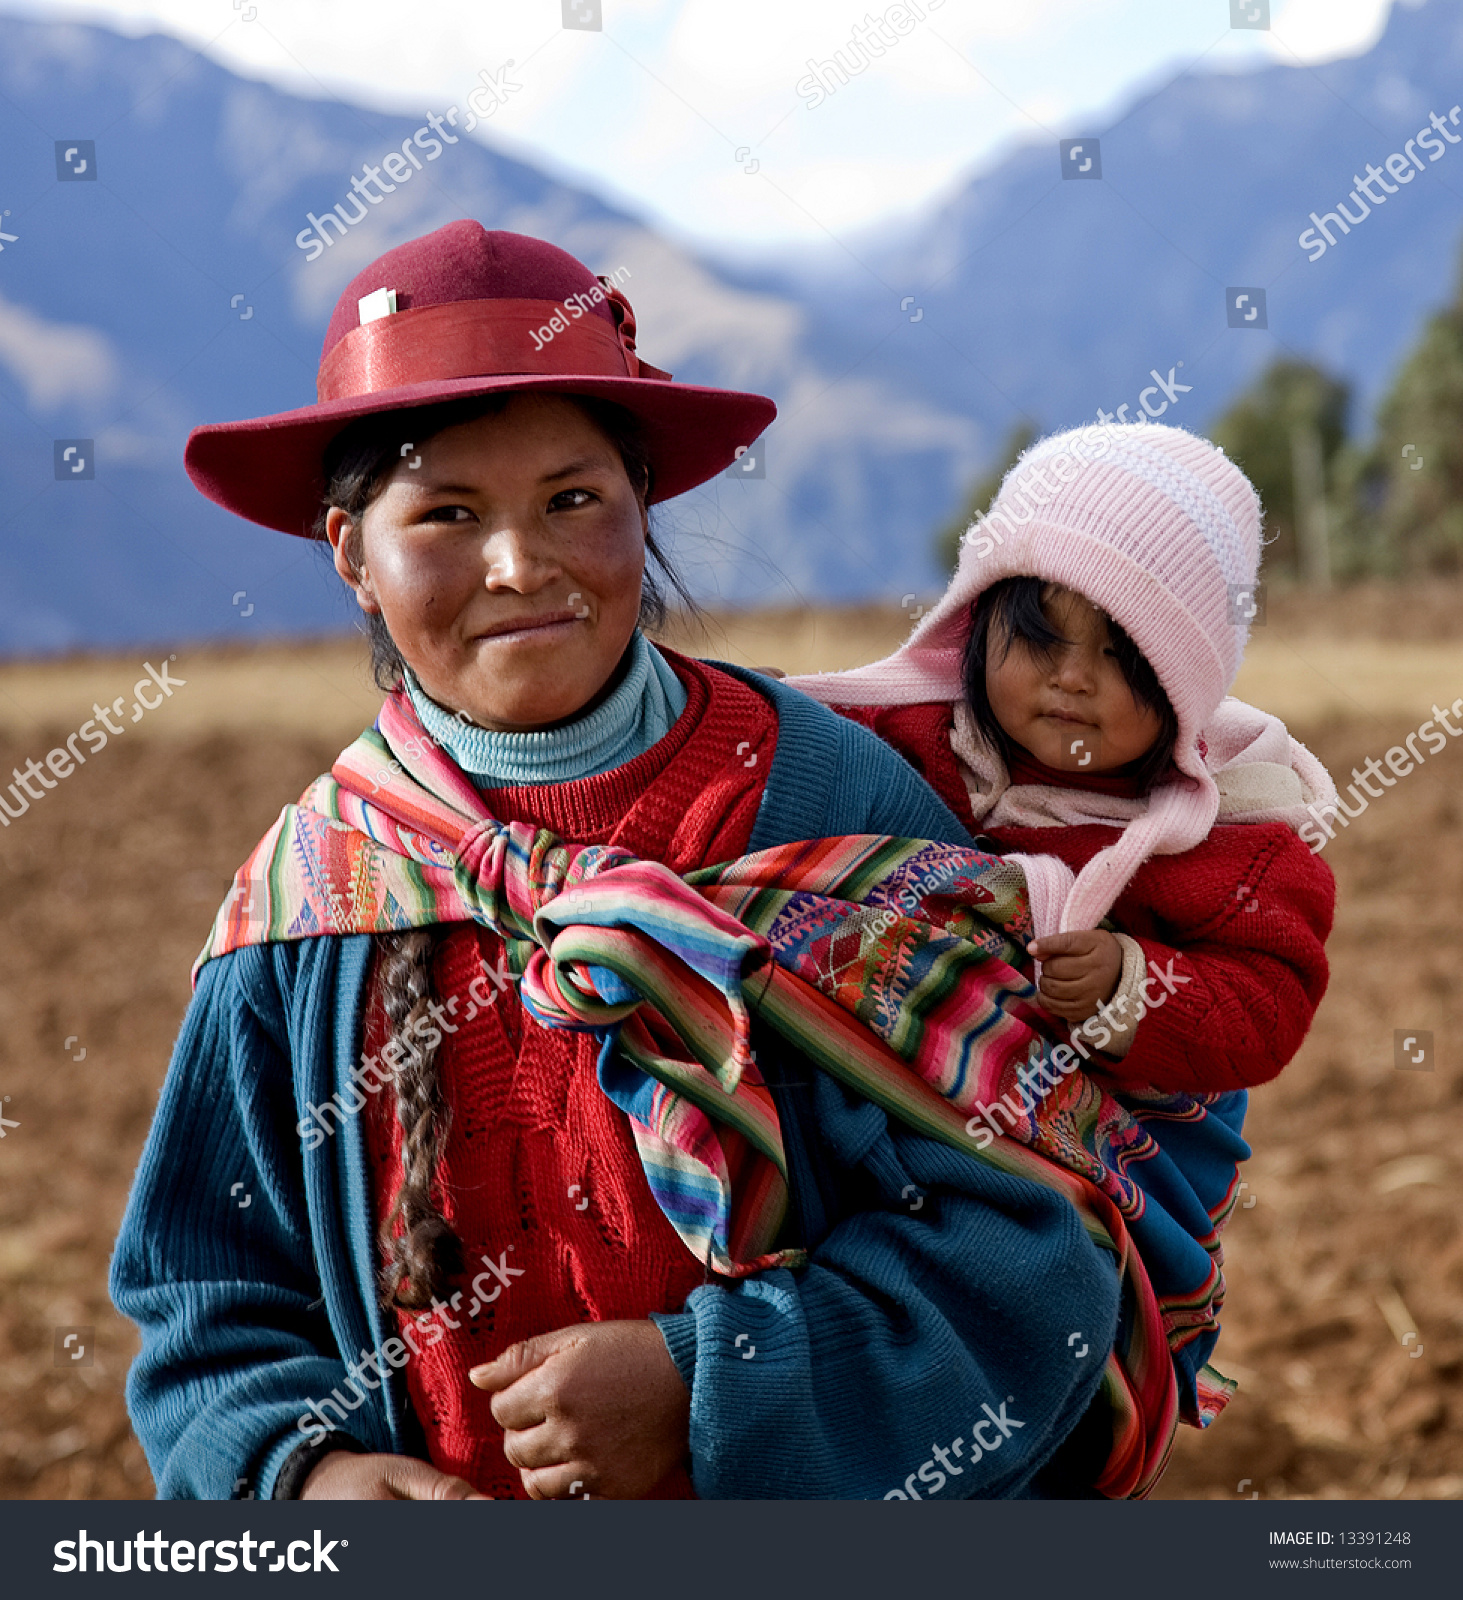 Peru Travel Tips Common Peruvian Phrases For Travel: Peruvian Woman Baby Native Clothing Sacred Stock Photo